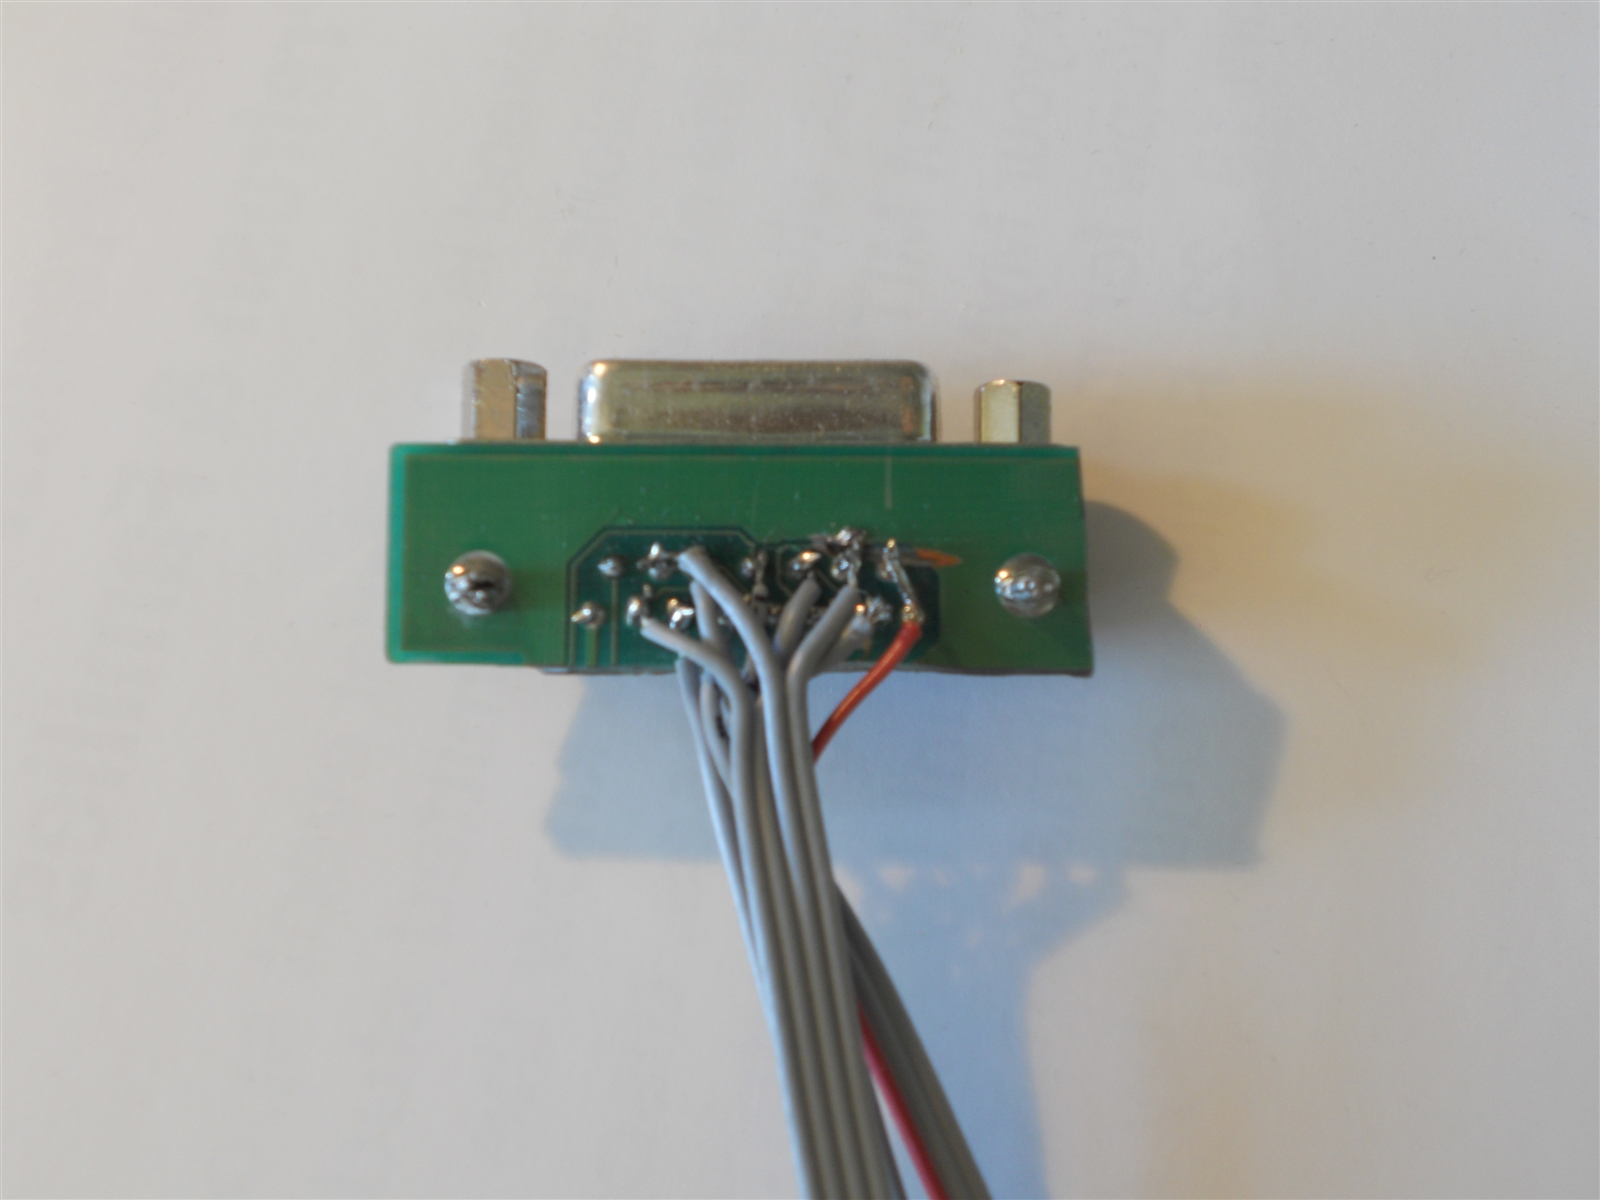 hight resolution of in the picture below the top three header pins are the 5v and ground connections red is 5v the middle four are the analog connections and the bottom